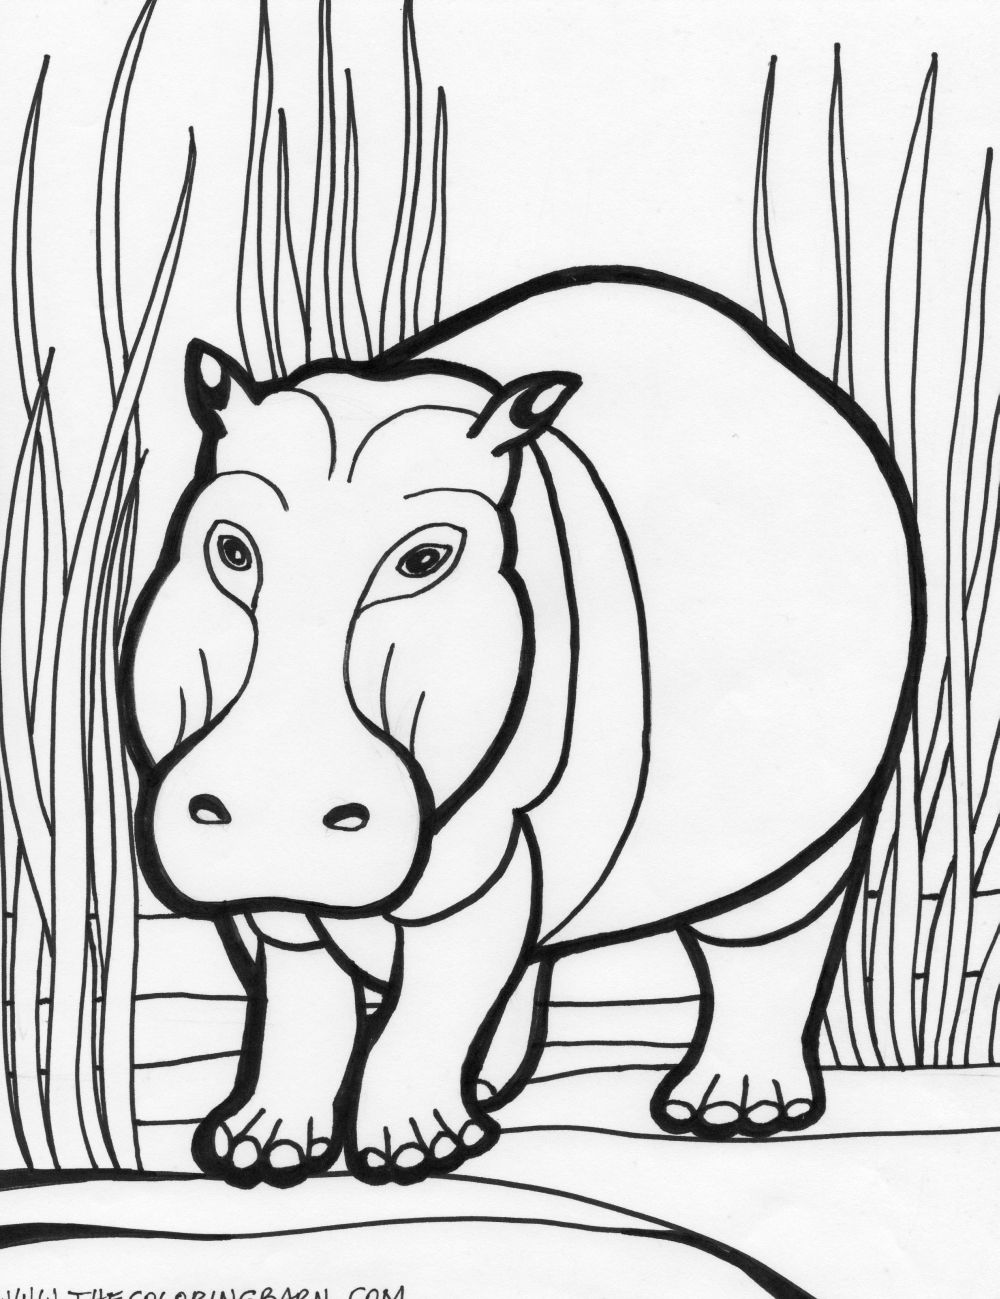 Hippopotamus hippo coloring page animals town animals color -  Hippo Color Page Hippopotamus Animals Coloring Pages Kids Coloring Pages